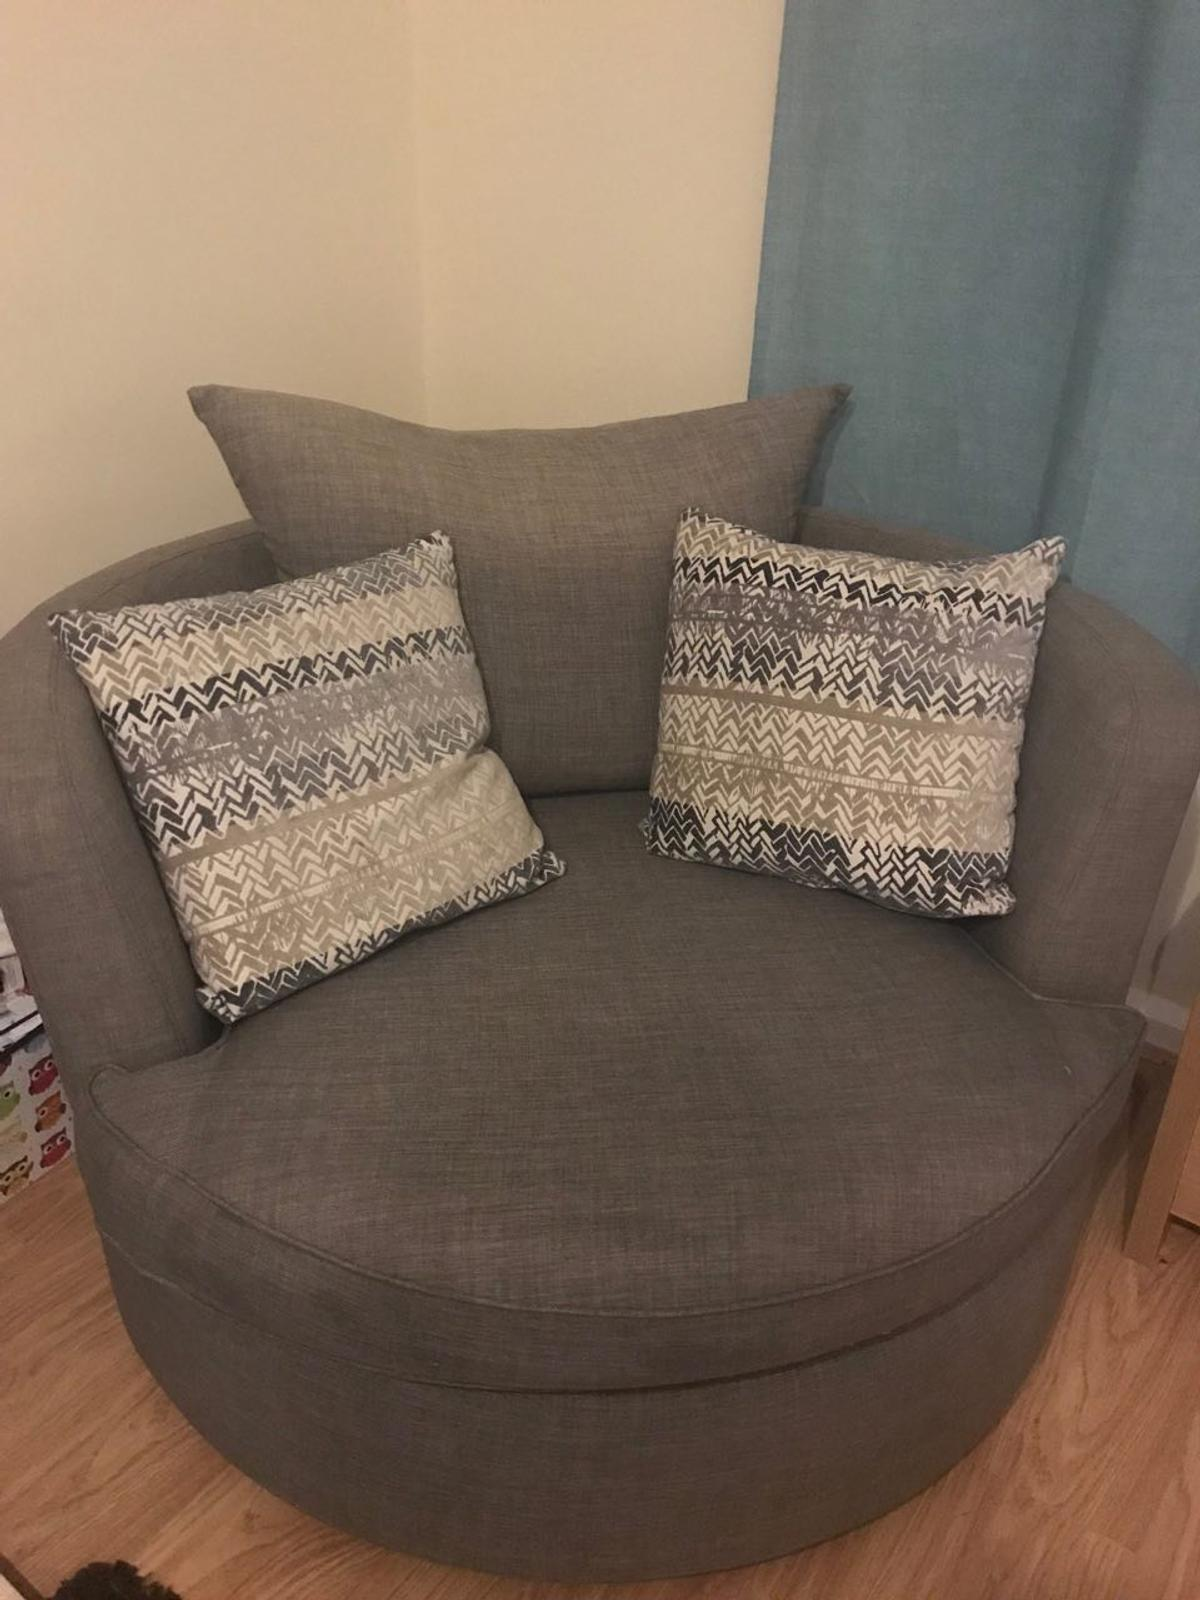 Stupendous 2 Seater Dfs Swivel Chair Footstool In Wrexham For 150 00 Bralicious Painted Fabric Chair Ideas Braliciousco